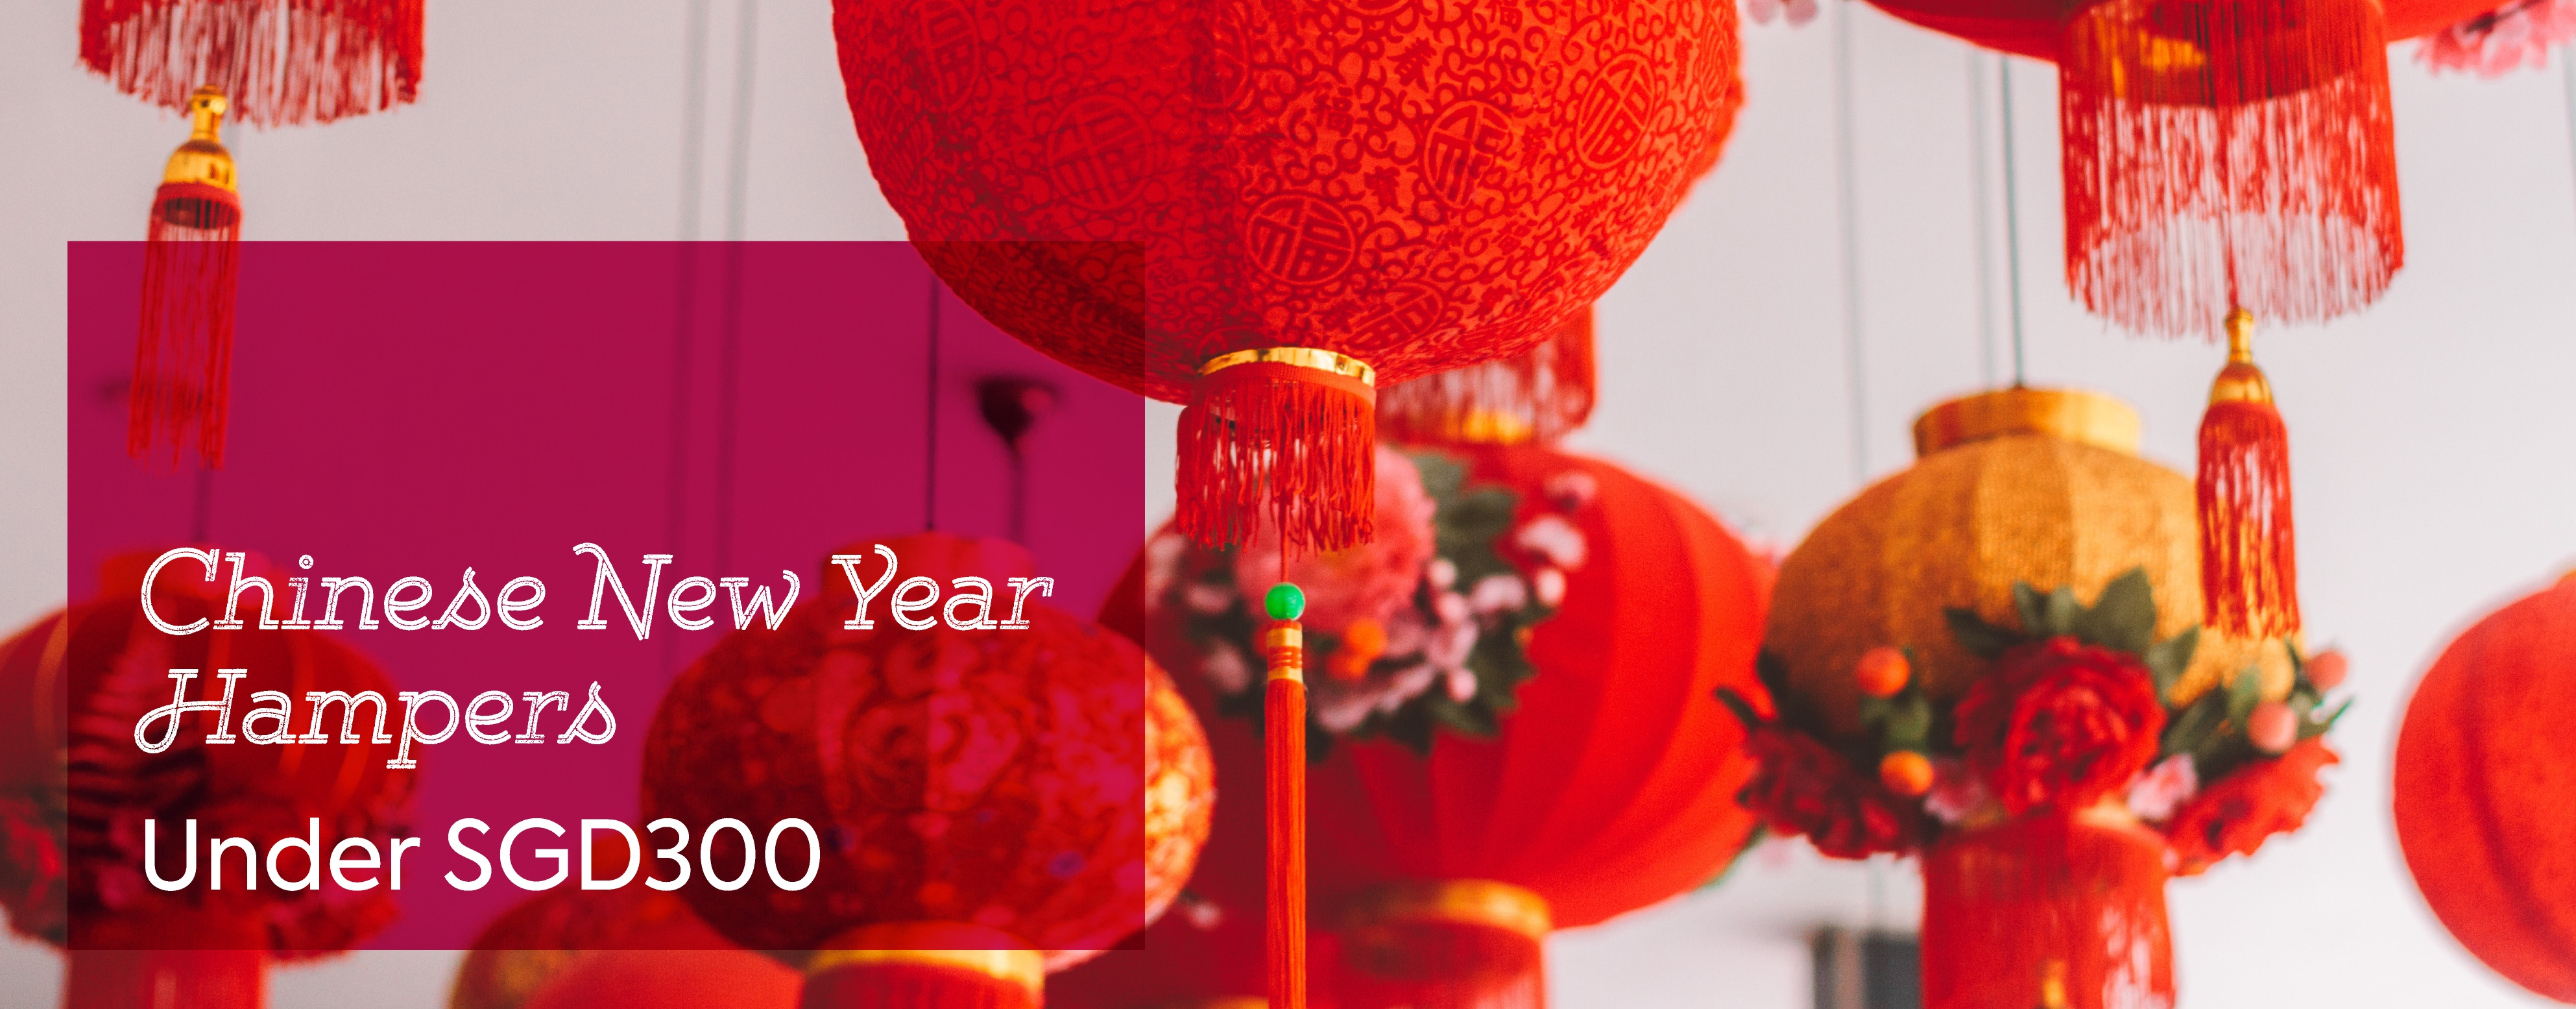 HChinese New Year Hampers under SGD300